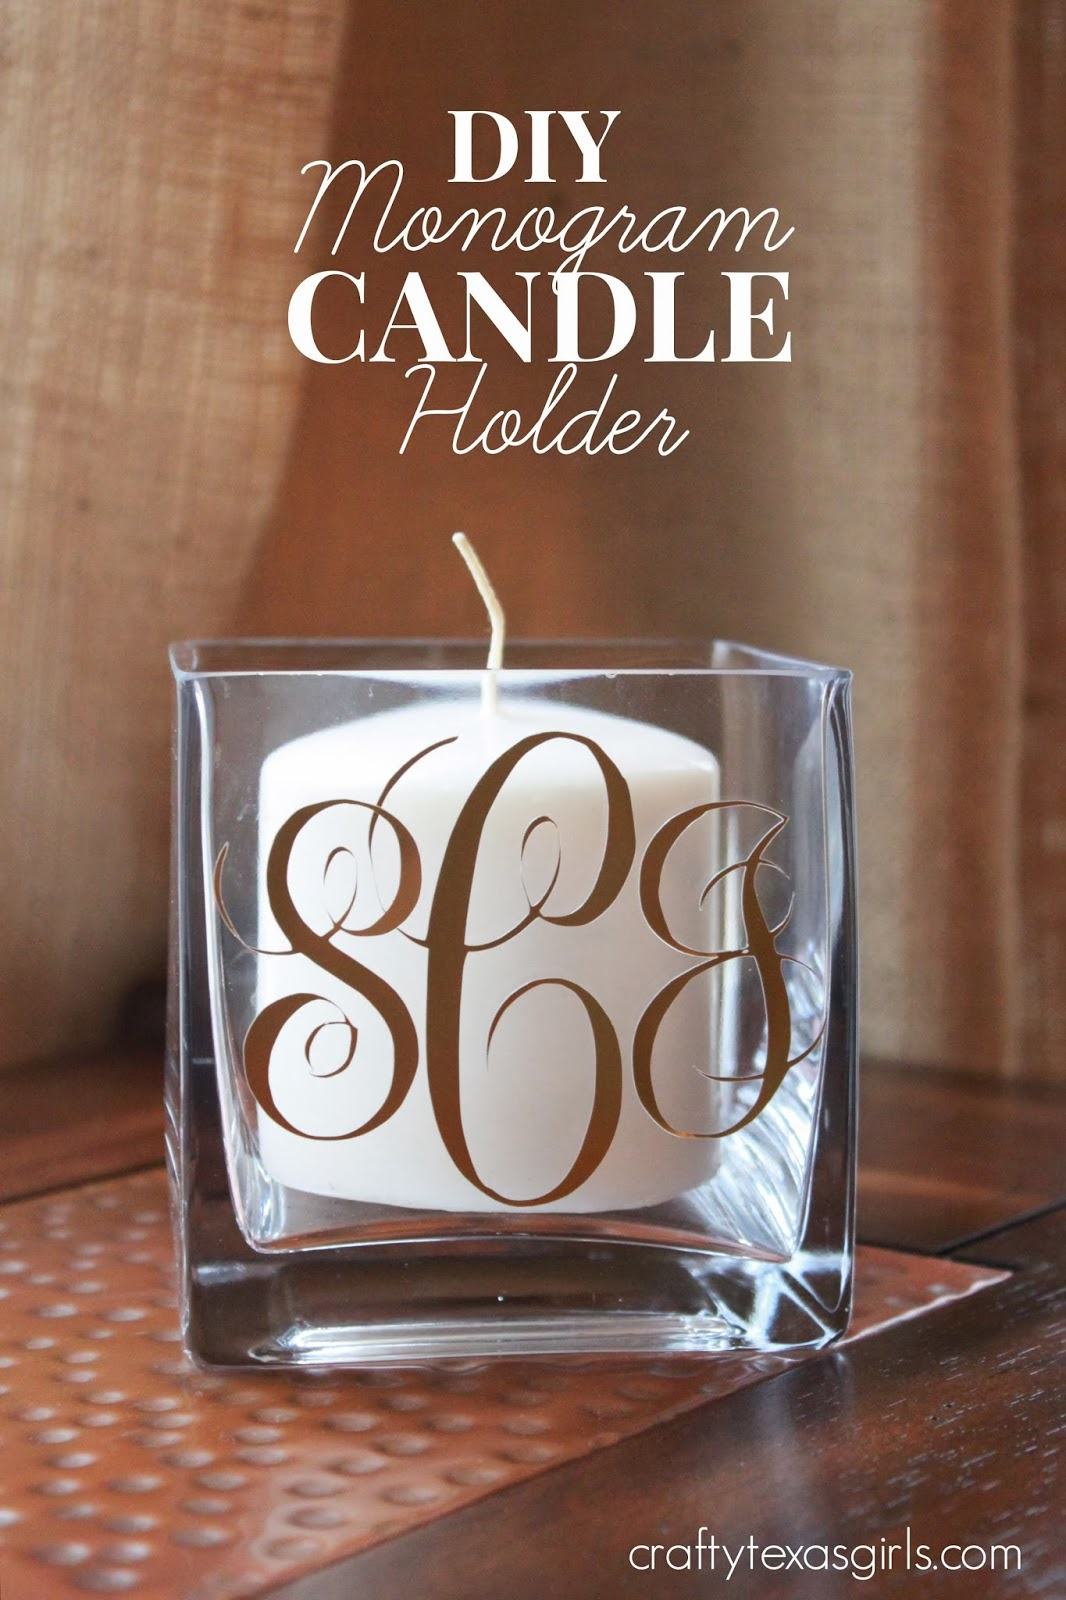 Crafty texas girls diy monogram candle holder for Diy monogram gifts